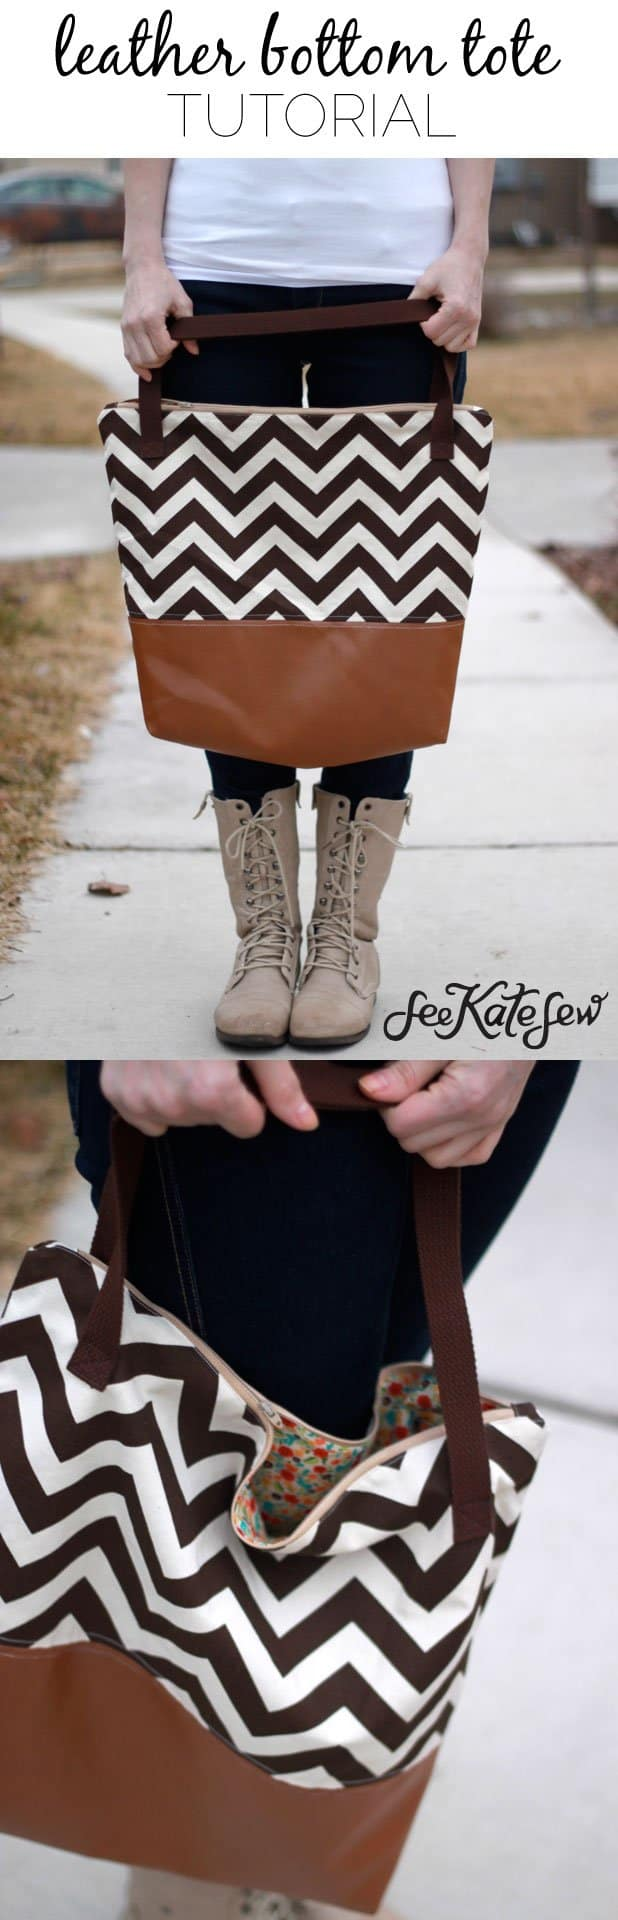 Leather Bottom Tote Tutorial | See Kate Sew